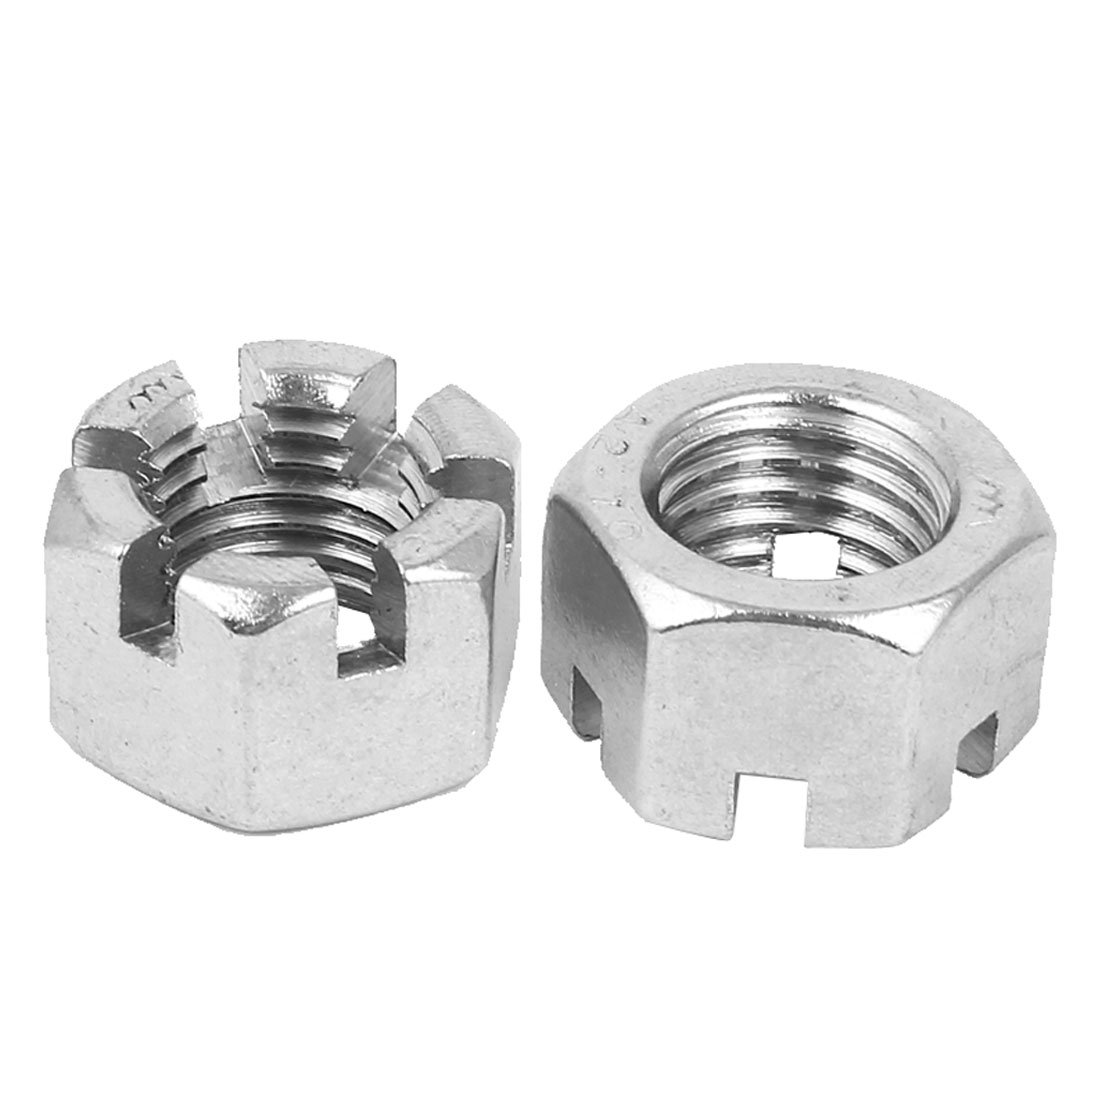 Pack of 2 uxcell M14 x 2mm Pitch 304 Stainless Steel Slotted Hex Nuts